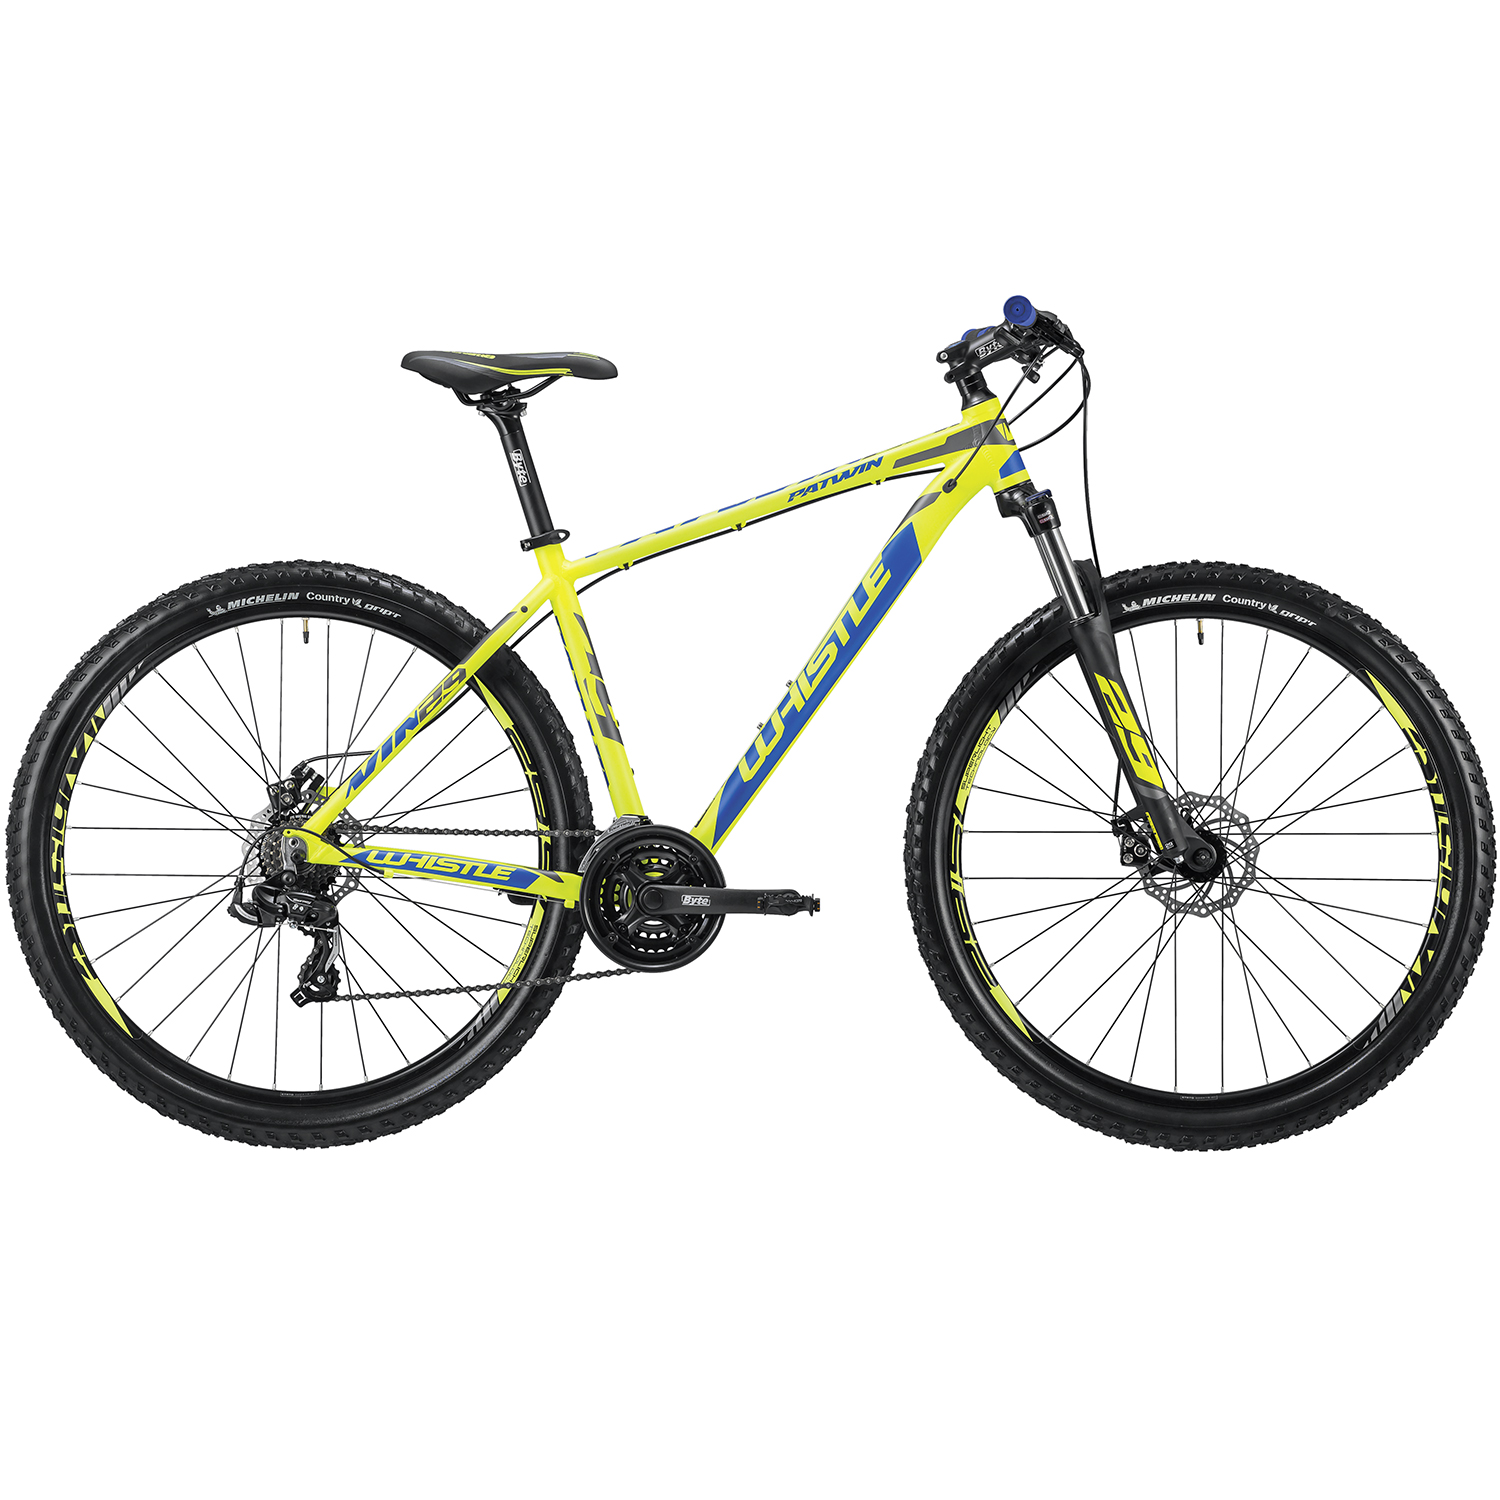 whistle patwin 1835 29 zoll mountainbike rahmengr e 17 19. Black Bedroom Furniture Sets. Home Design Ideas